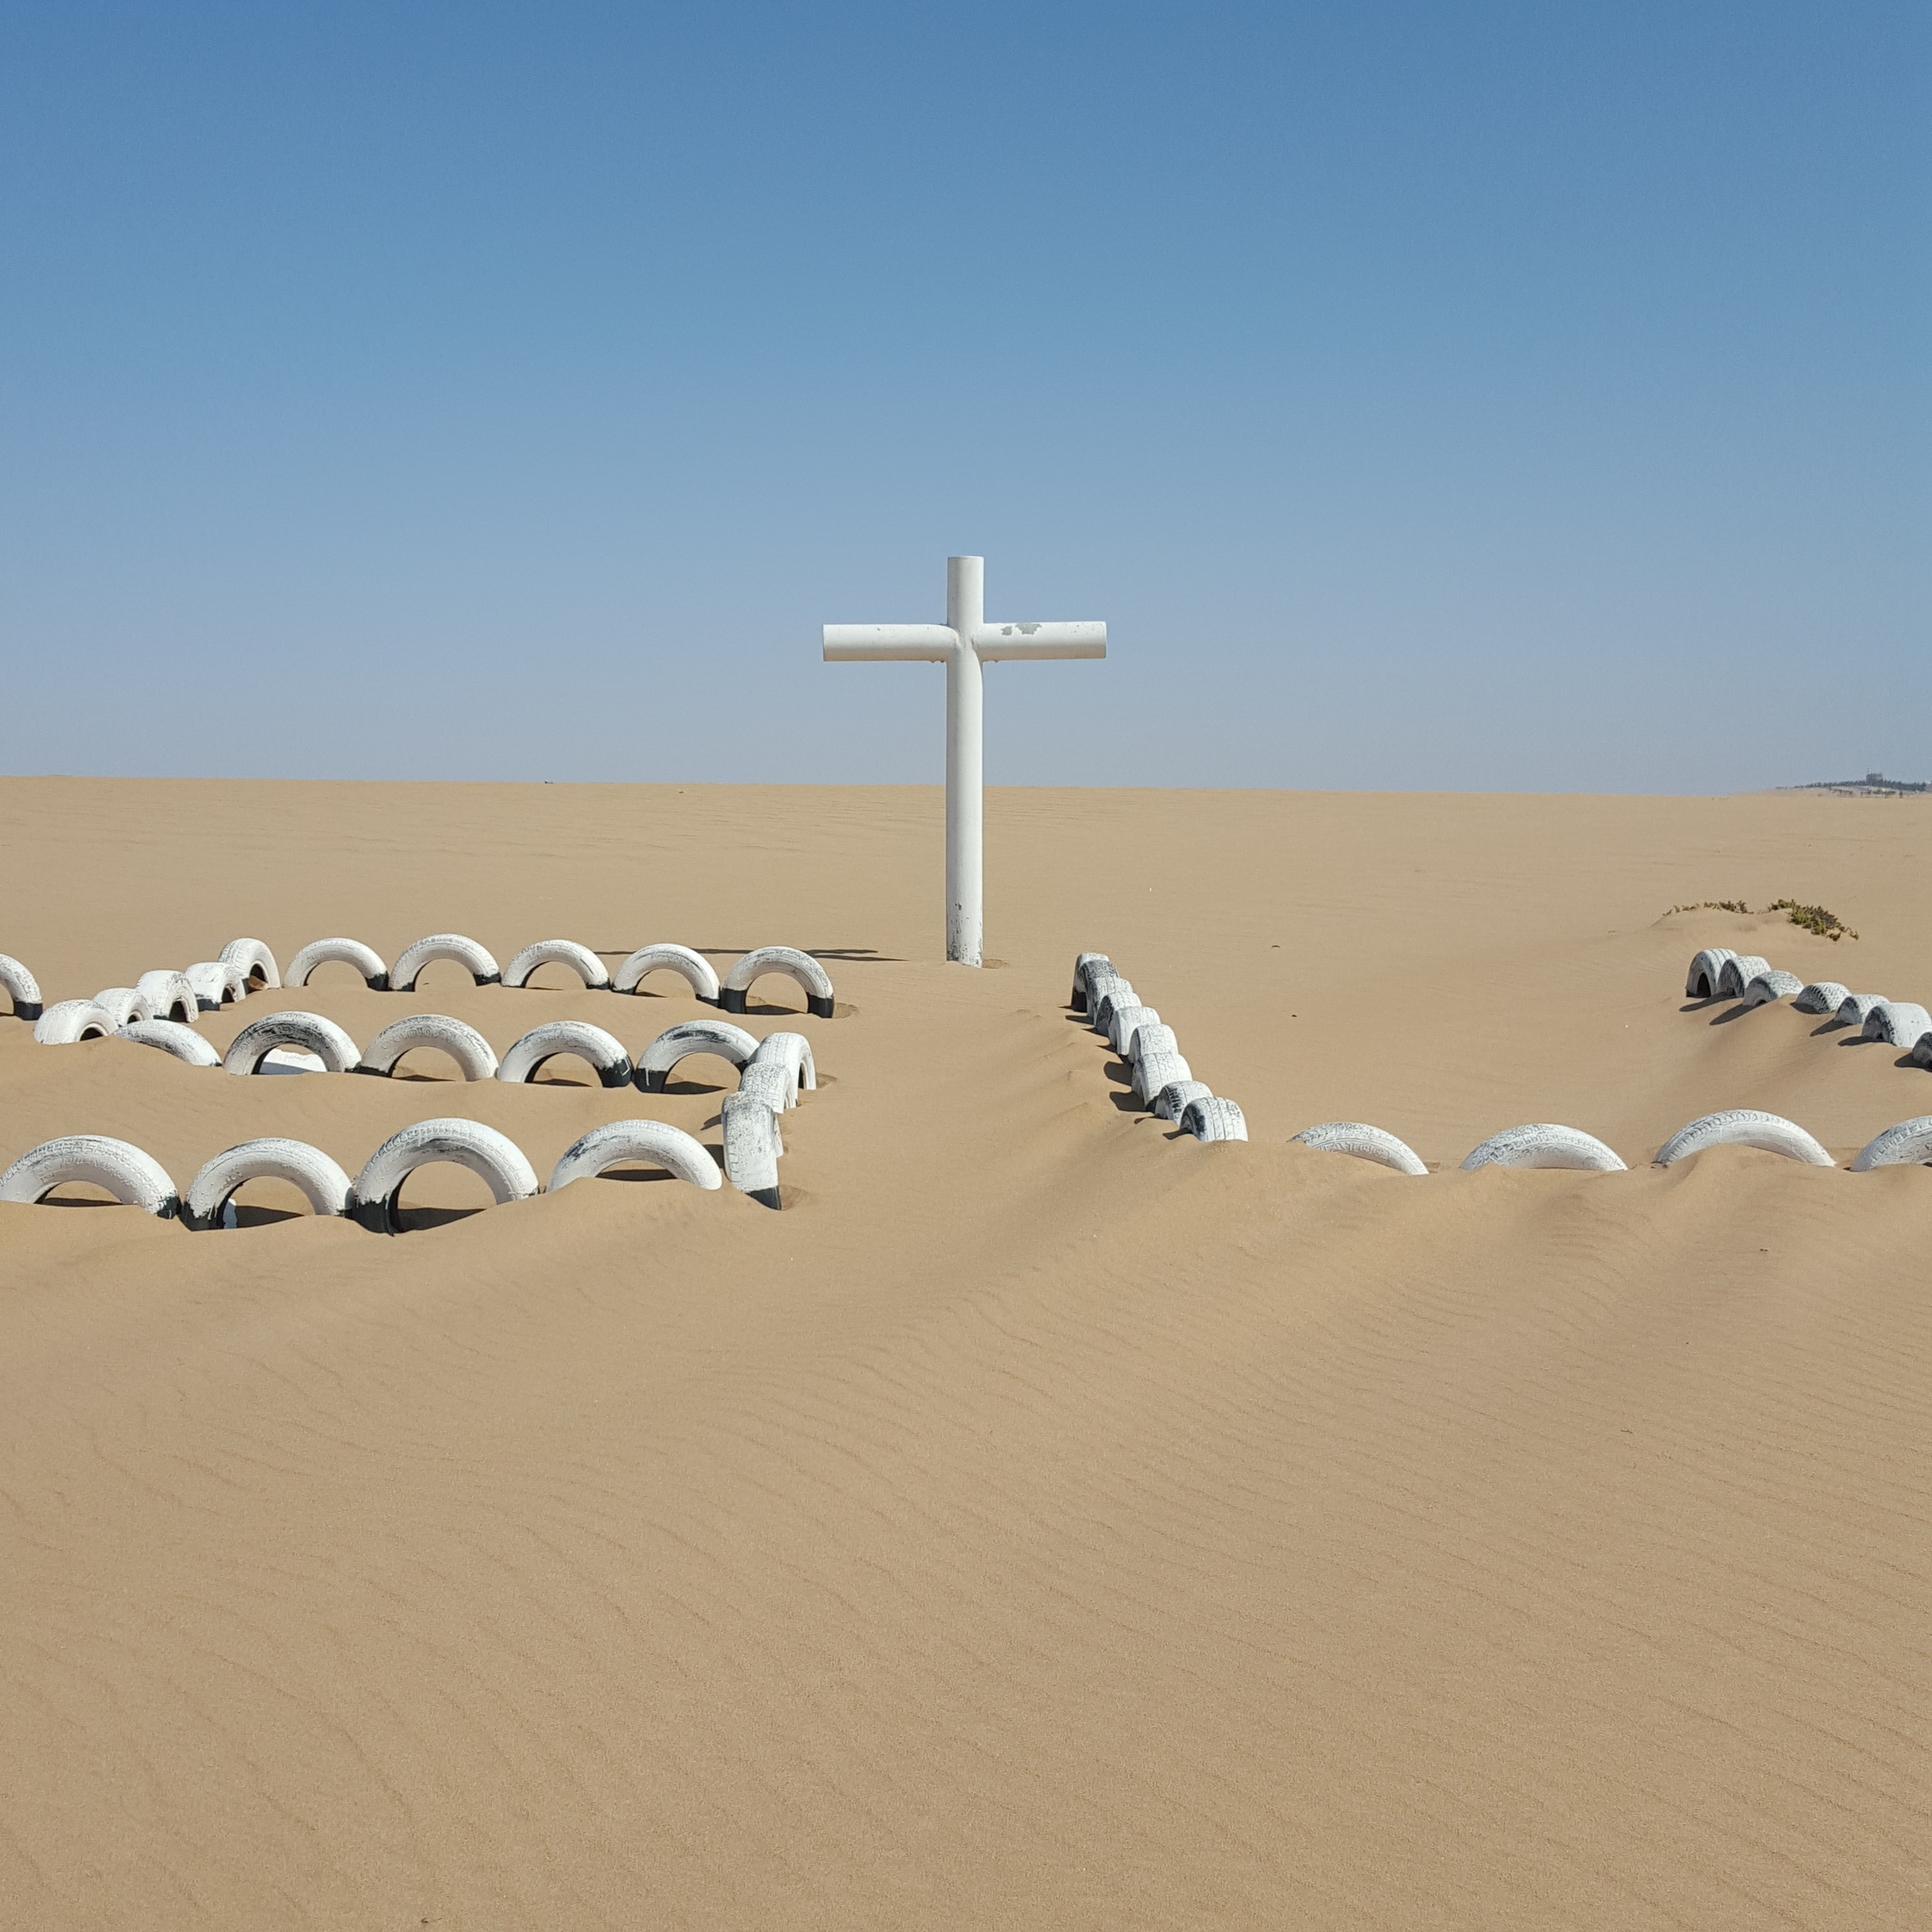 A lonely cross pitched in the center of the Namib Desert in Namibia, a place considered by many to be the first desert on Earth. (2015)